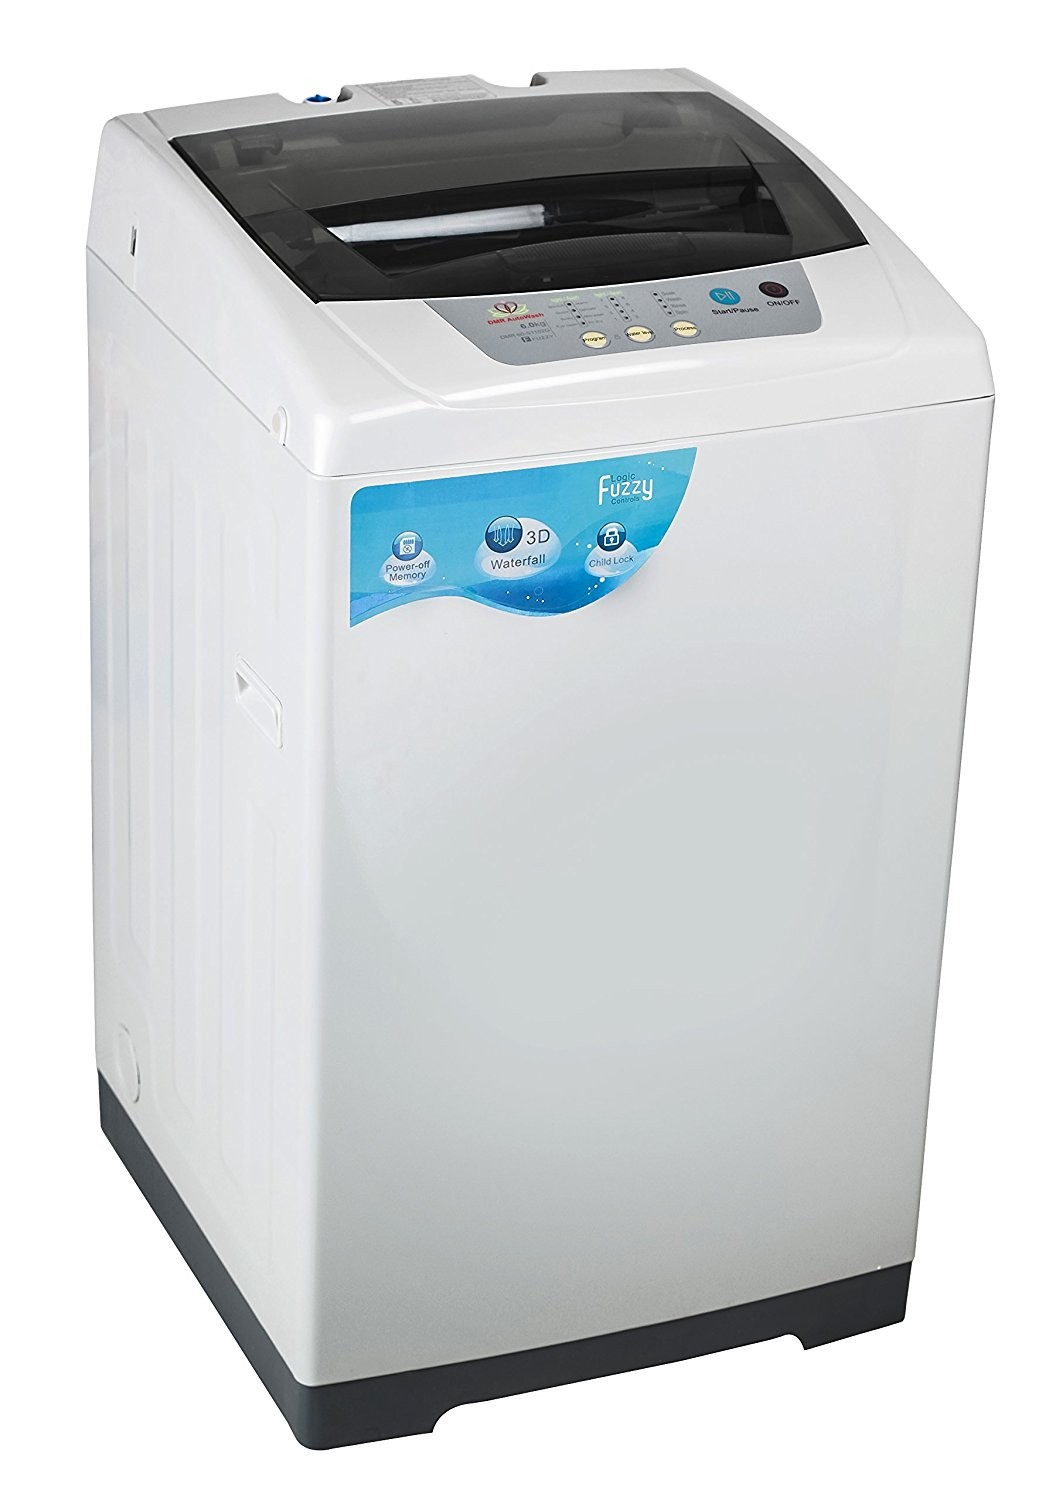 DMR Fully automatic washing machine